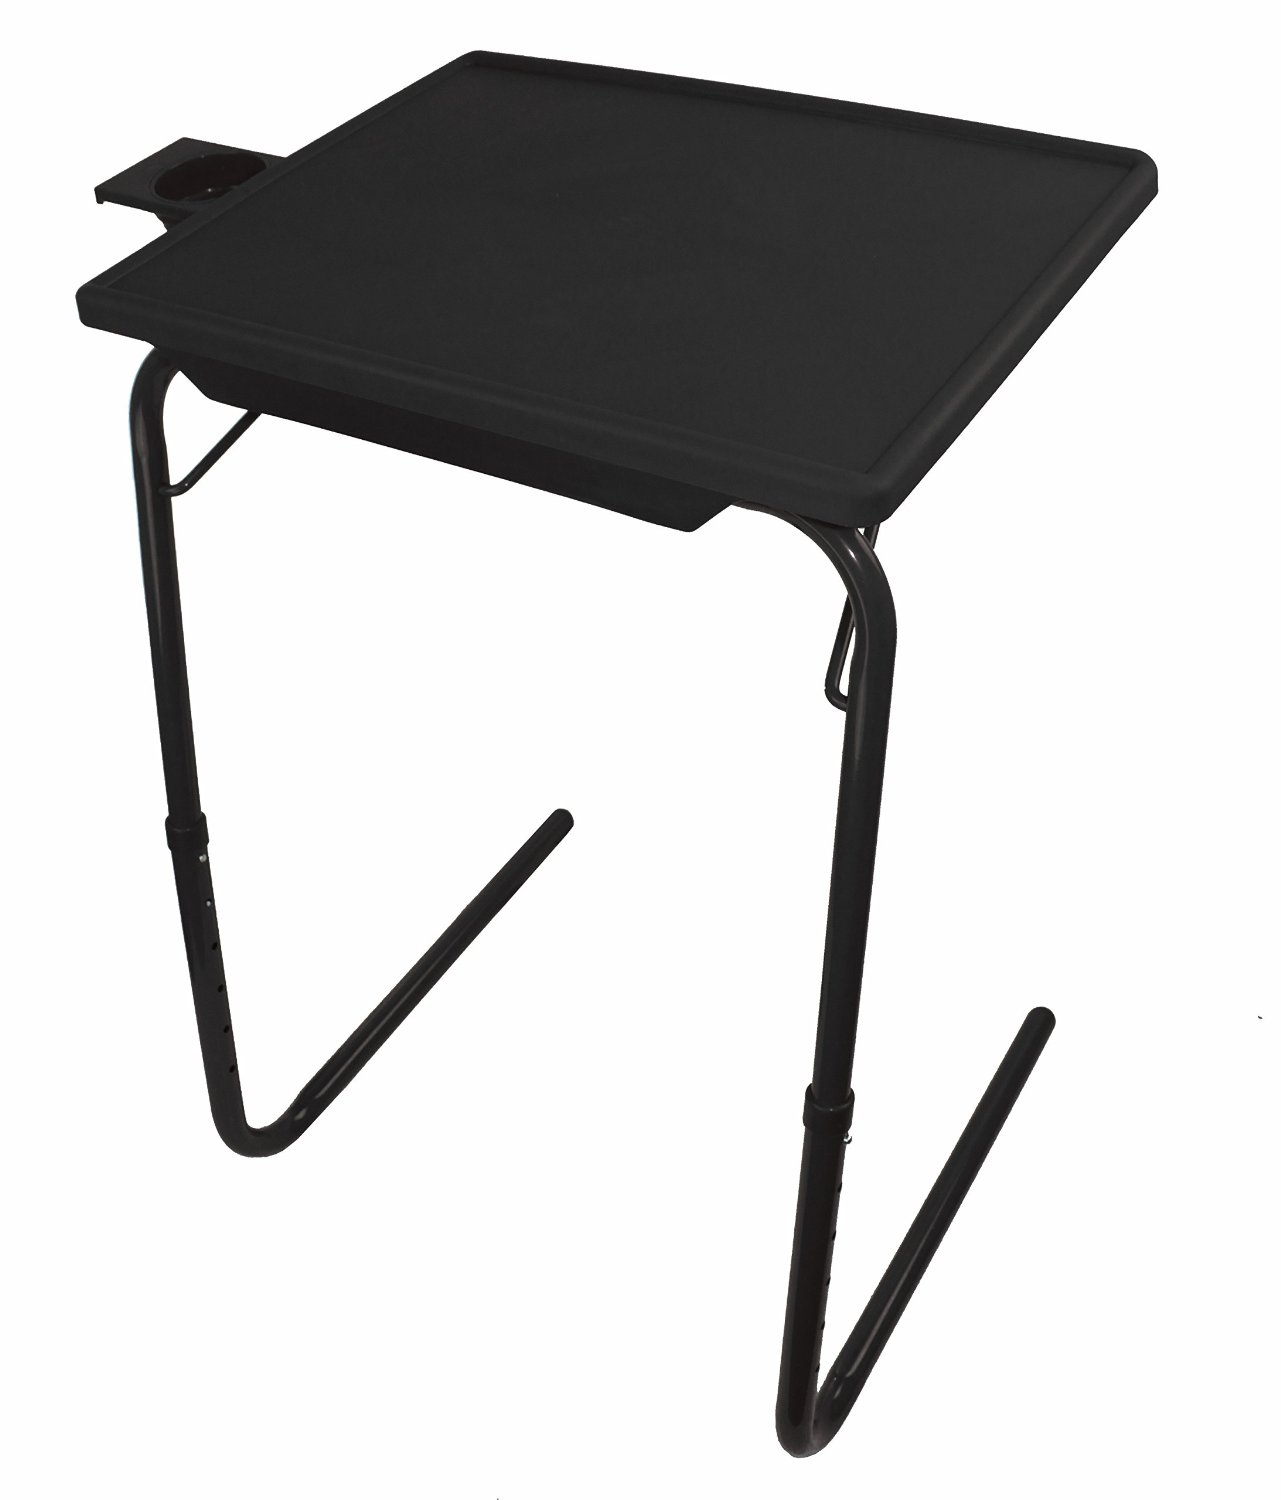 Tray Table Portable Foldable Comfortable Tv Tray Table W Cup Holder Black